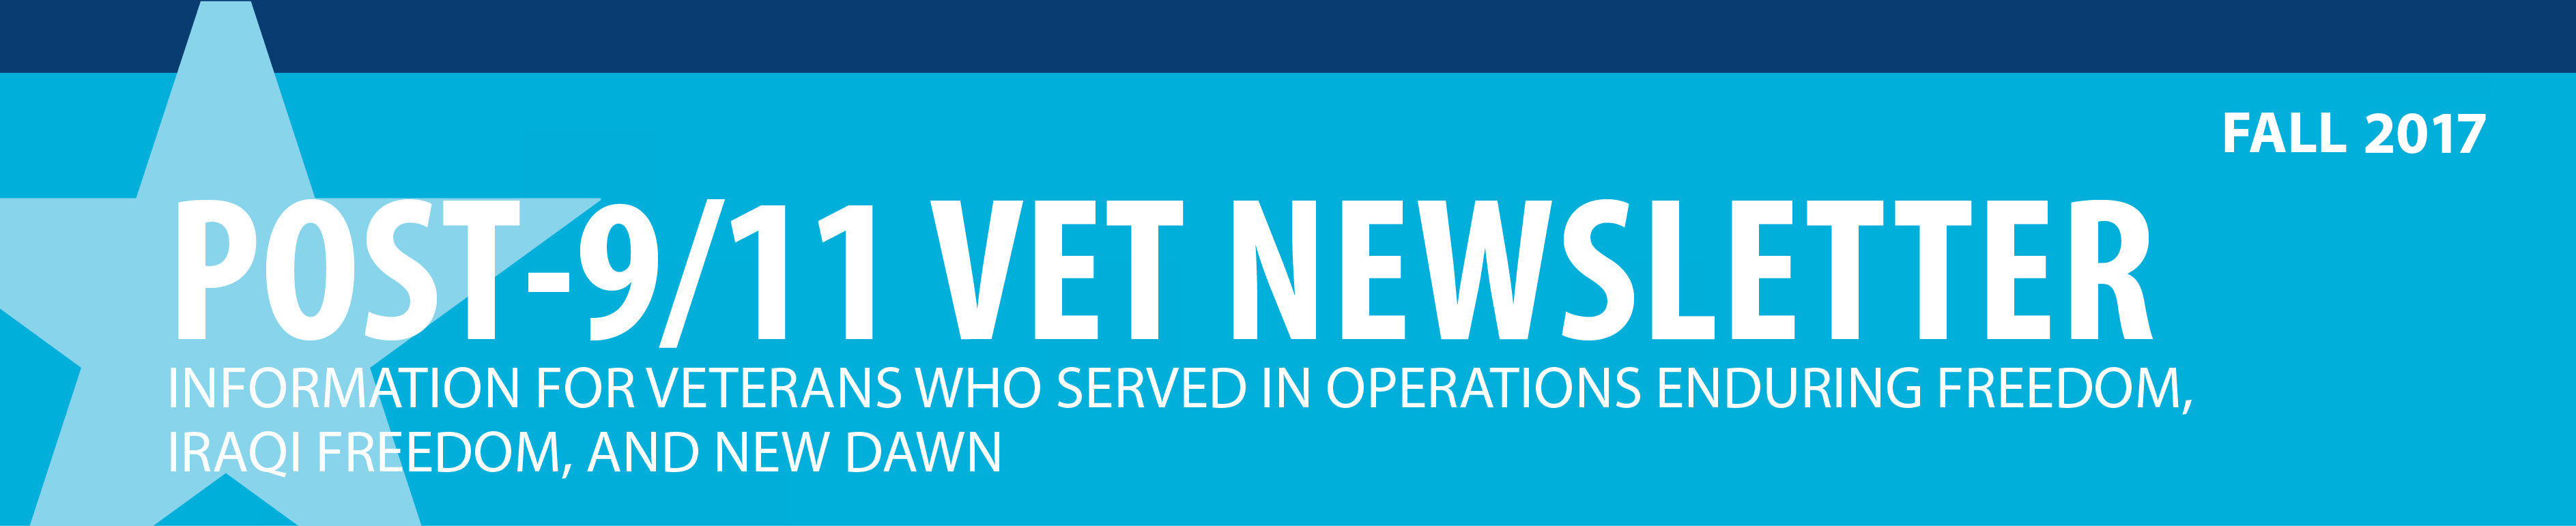 Post-9/11 Vet Newsletter: Information for Veterans who served in Operations Enduring Freedom, Iraqi Freedom, and New Dawn.